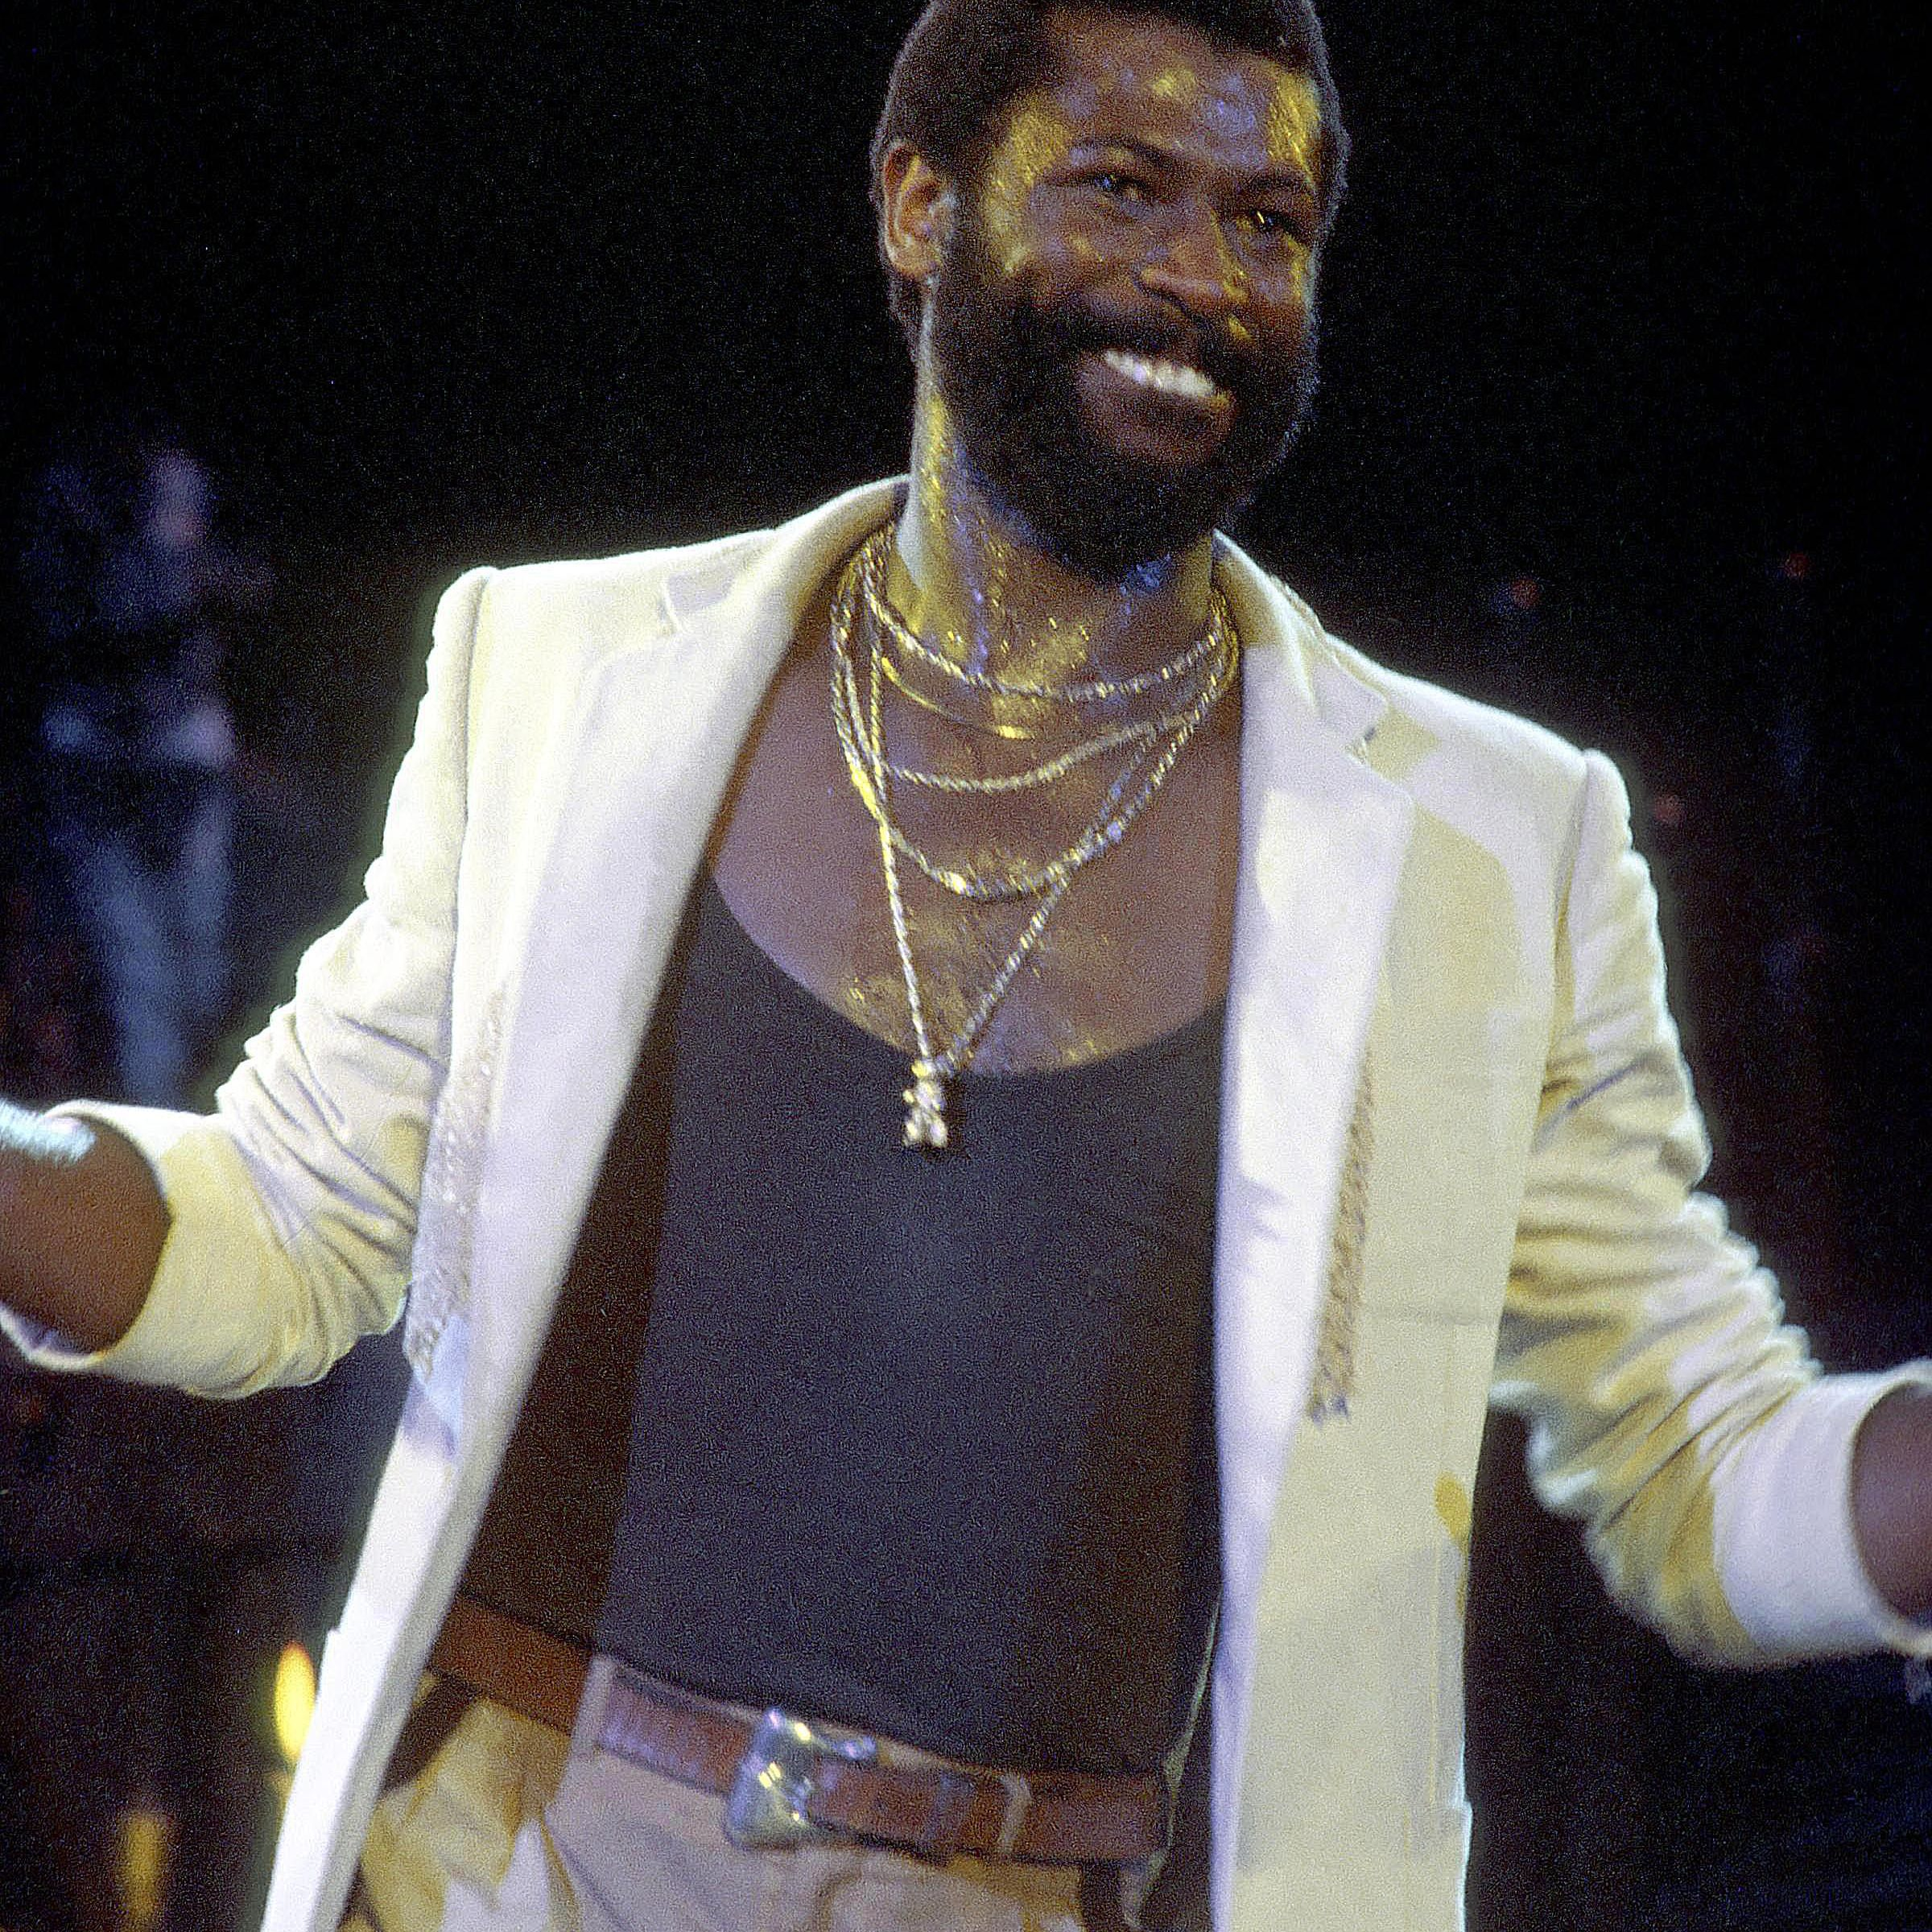 Portrait of Teddy Pendergrass during a performance